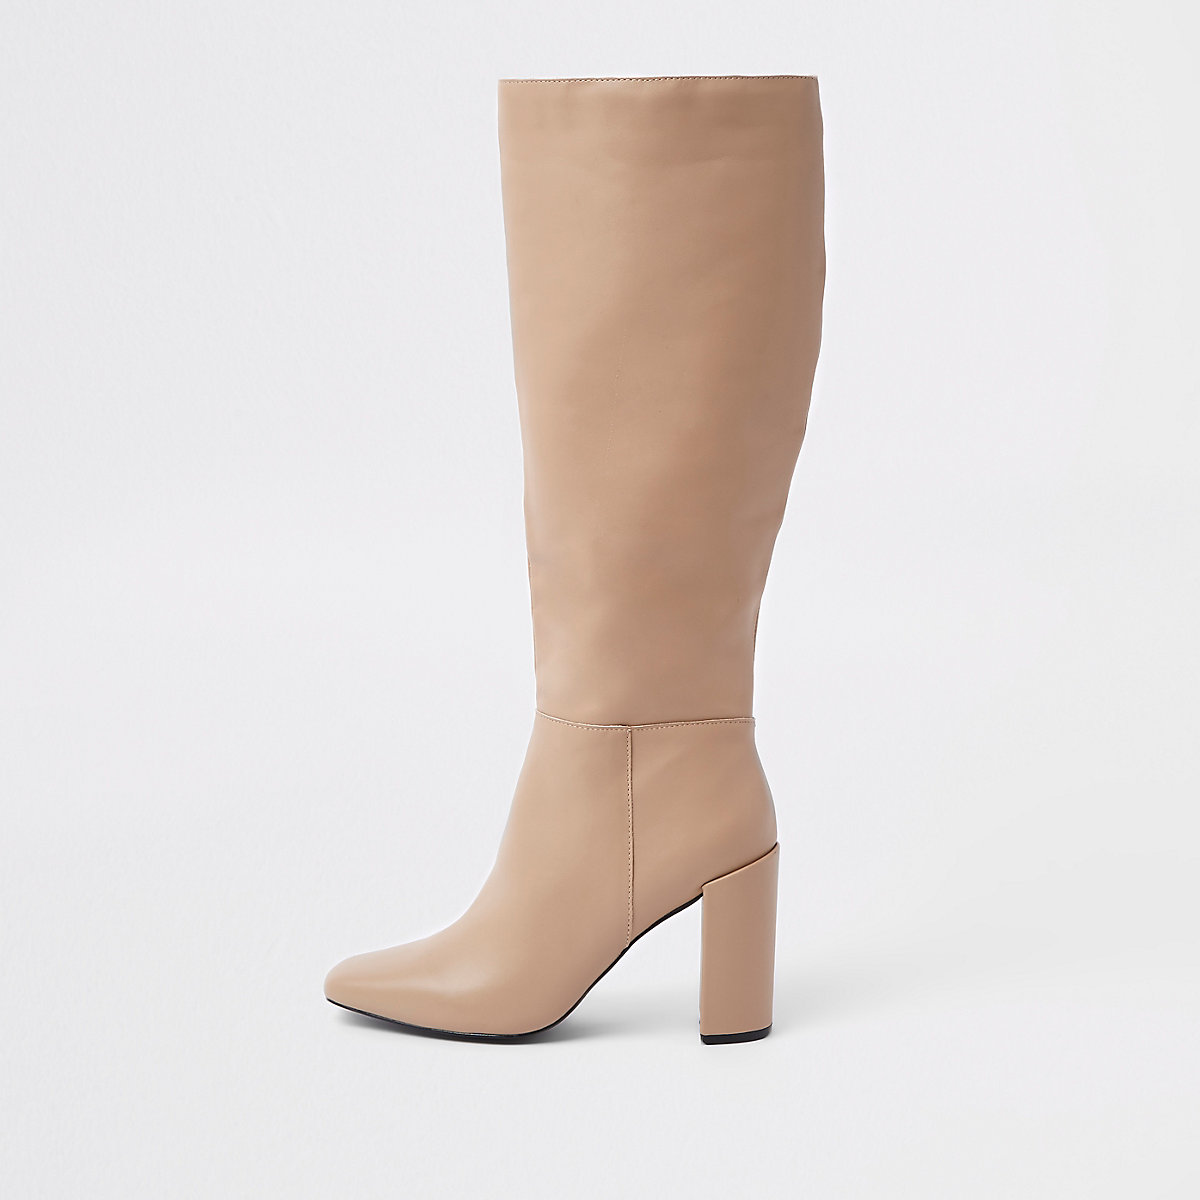 Cream leather block heel knee high boots